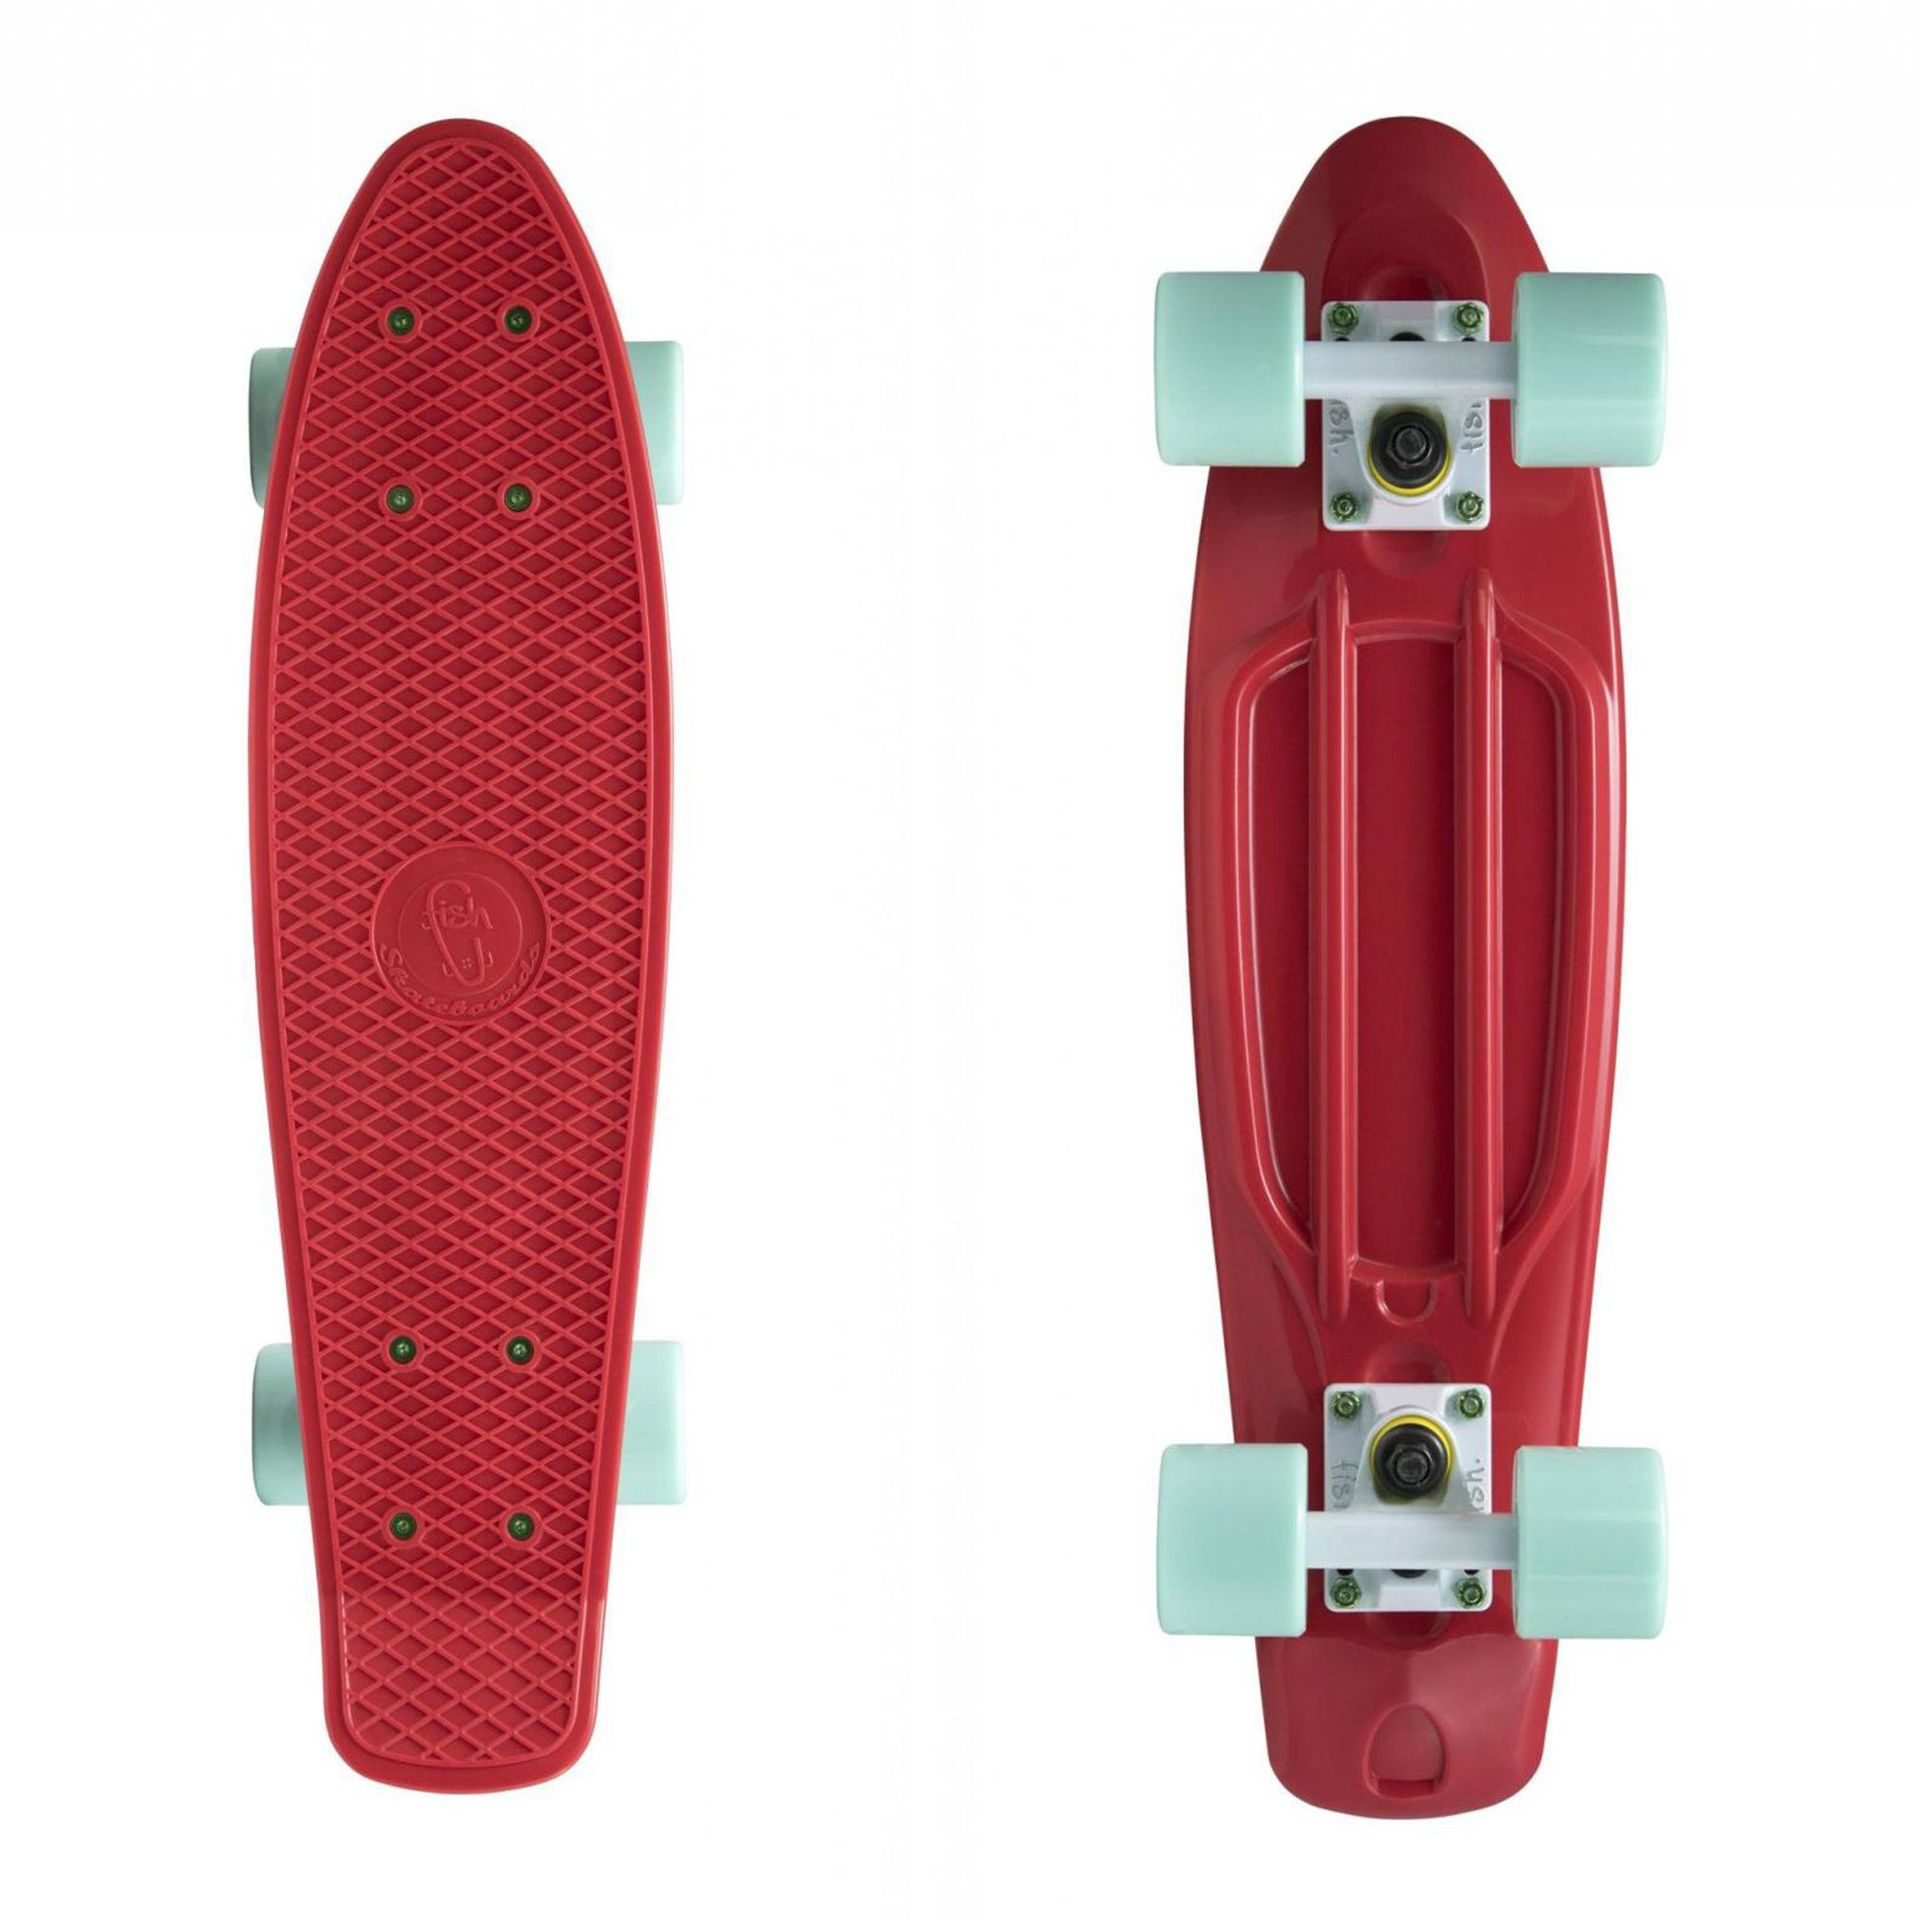 FISHBOARD FISH SKATEBOARDS RED|WHITE|SUMMER GREEN 1